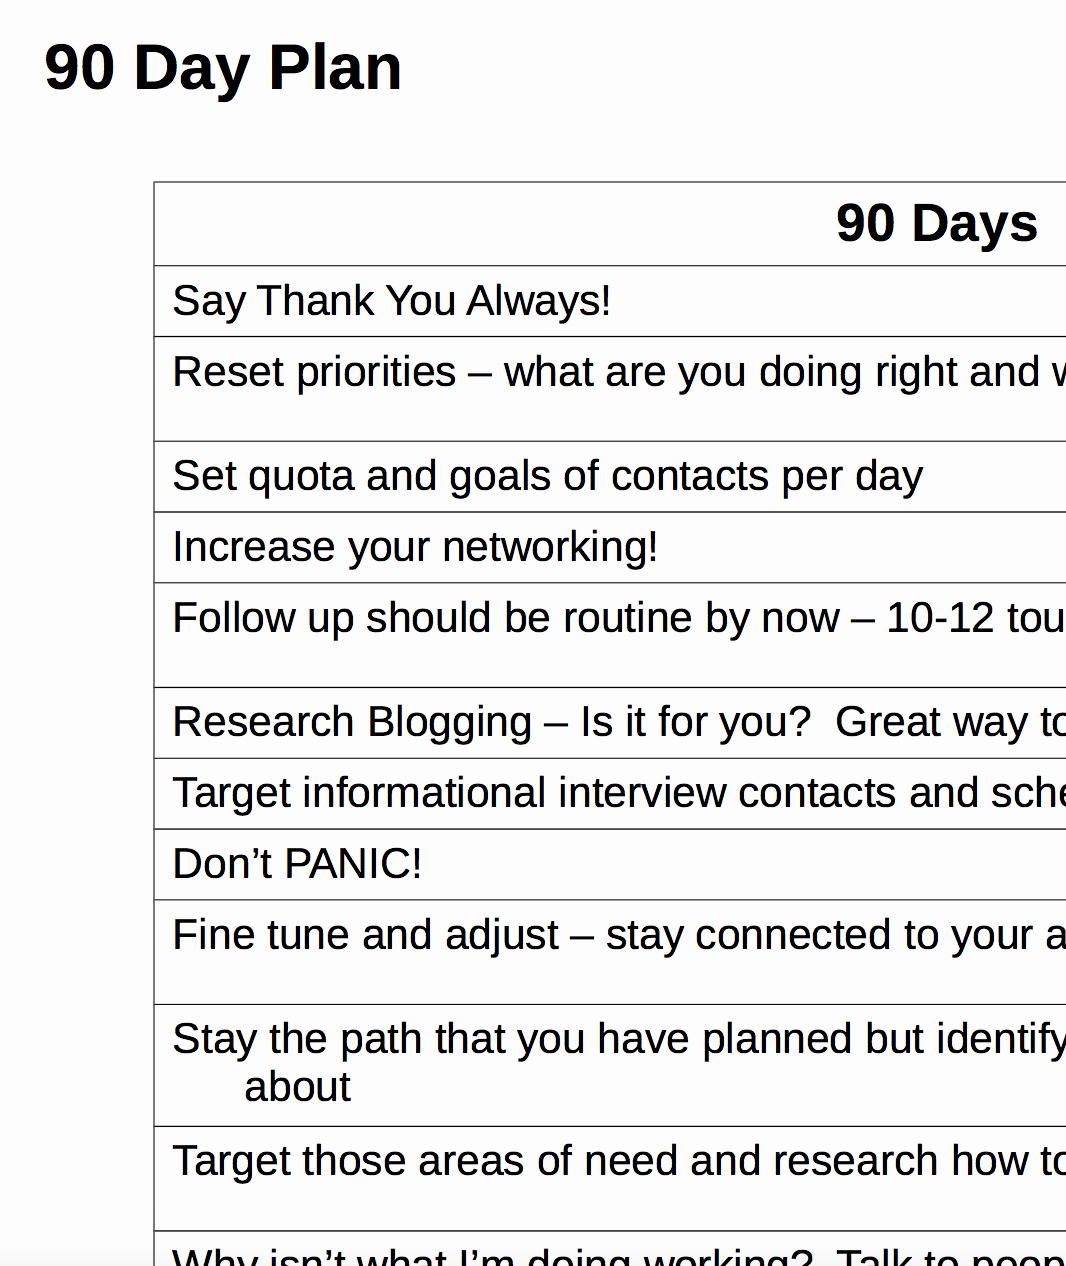 90 Days Action Plan Template Inspirational 90 Day Action Plan Template 2